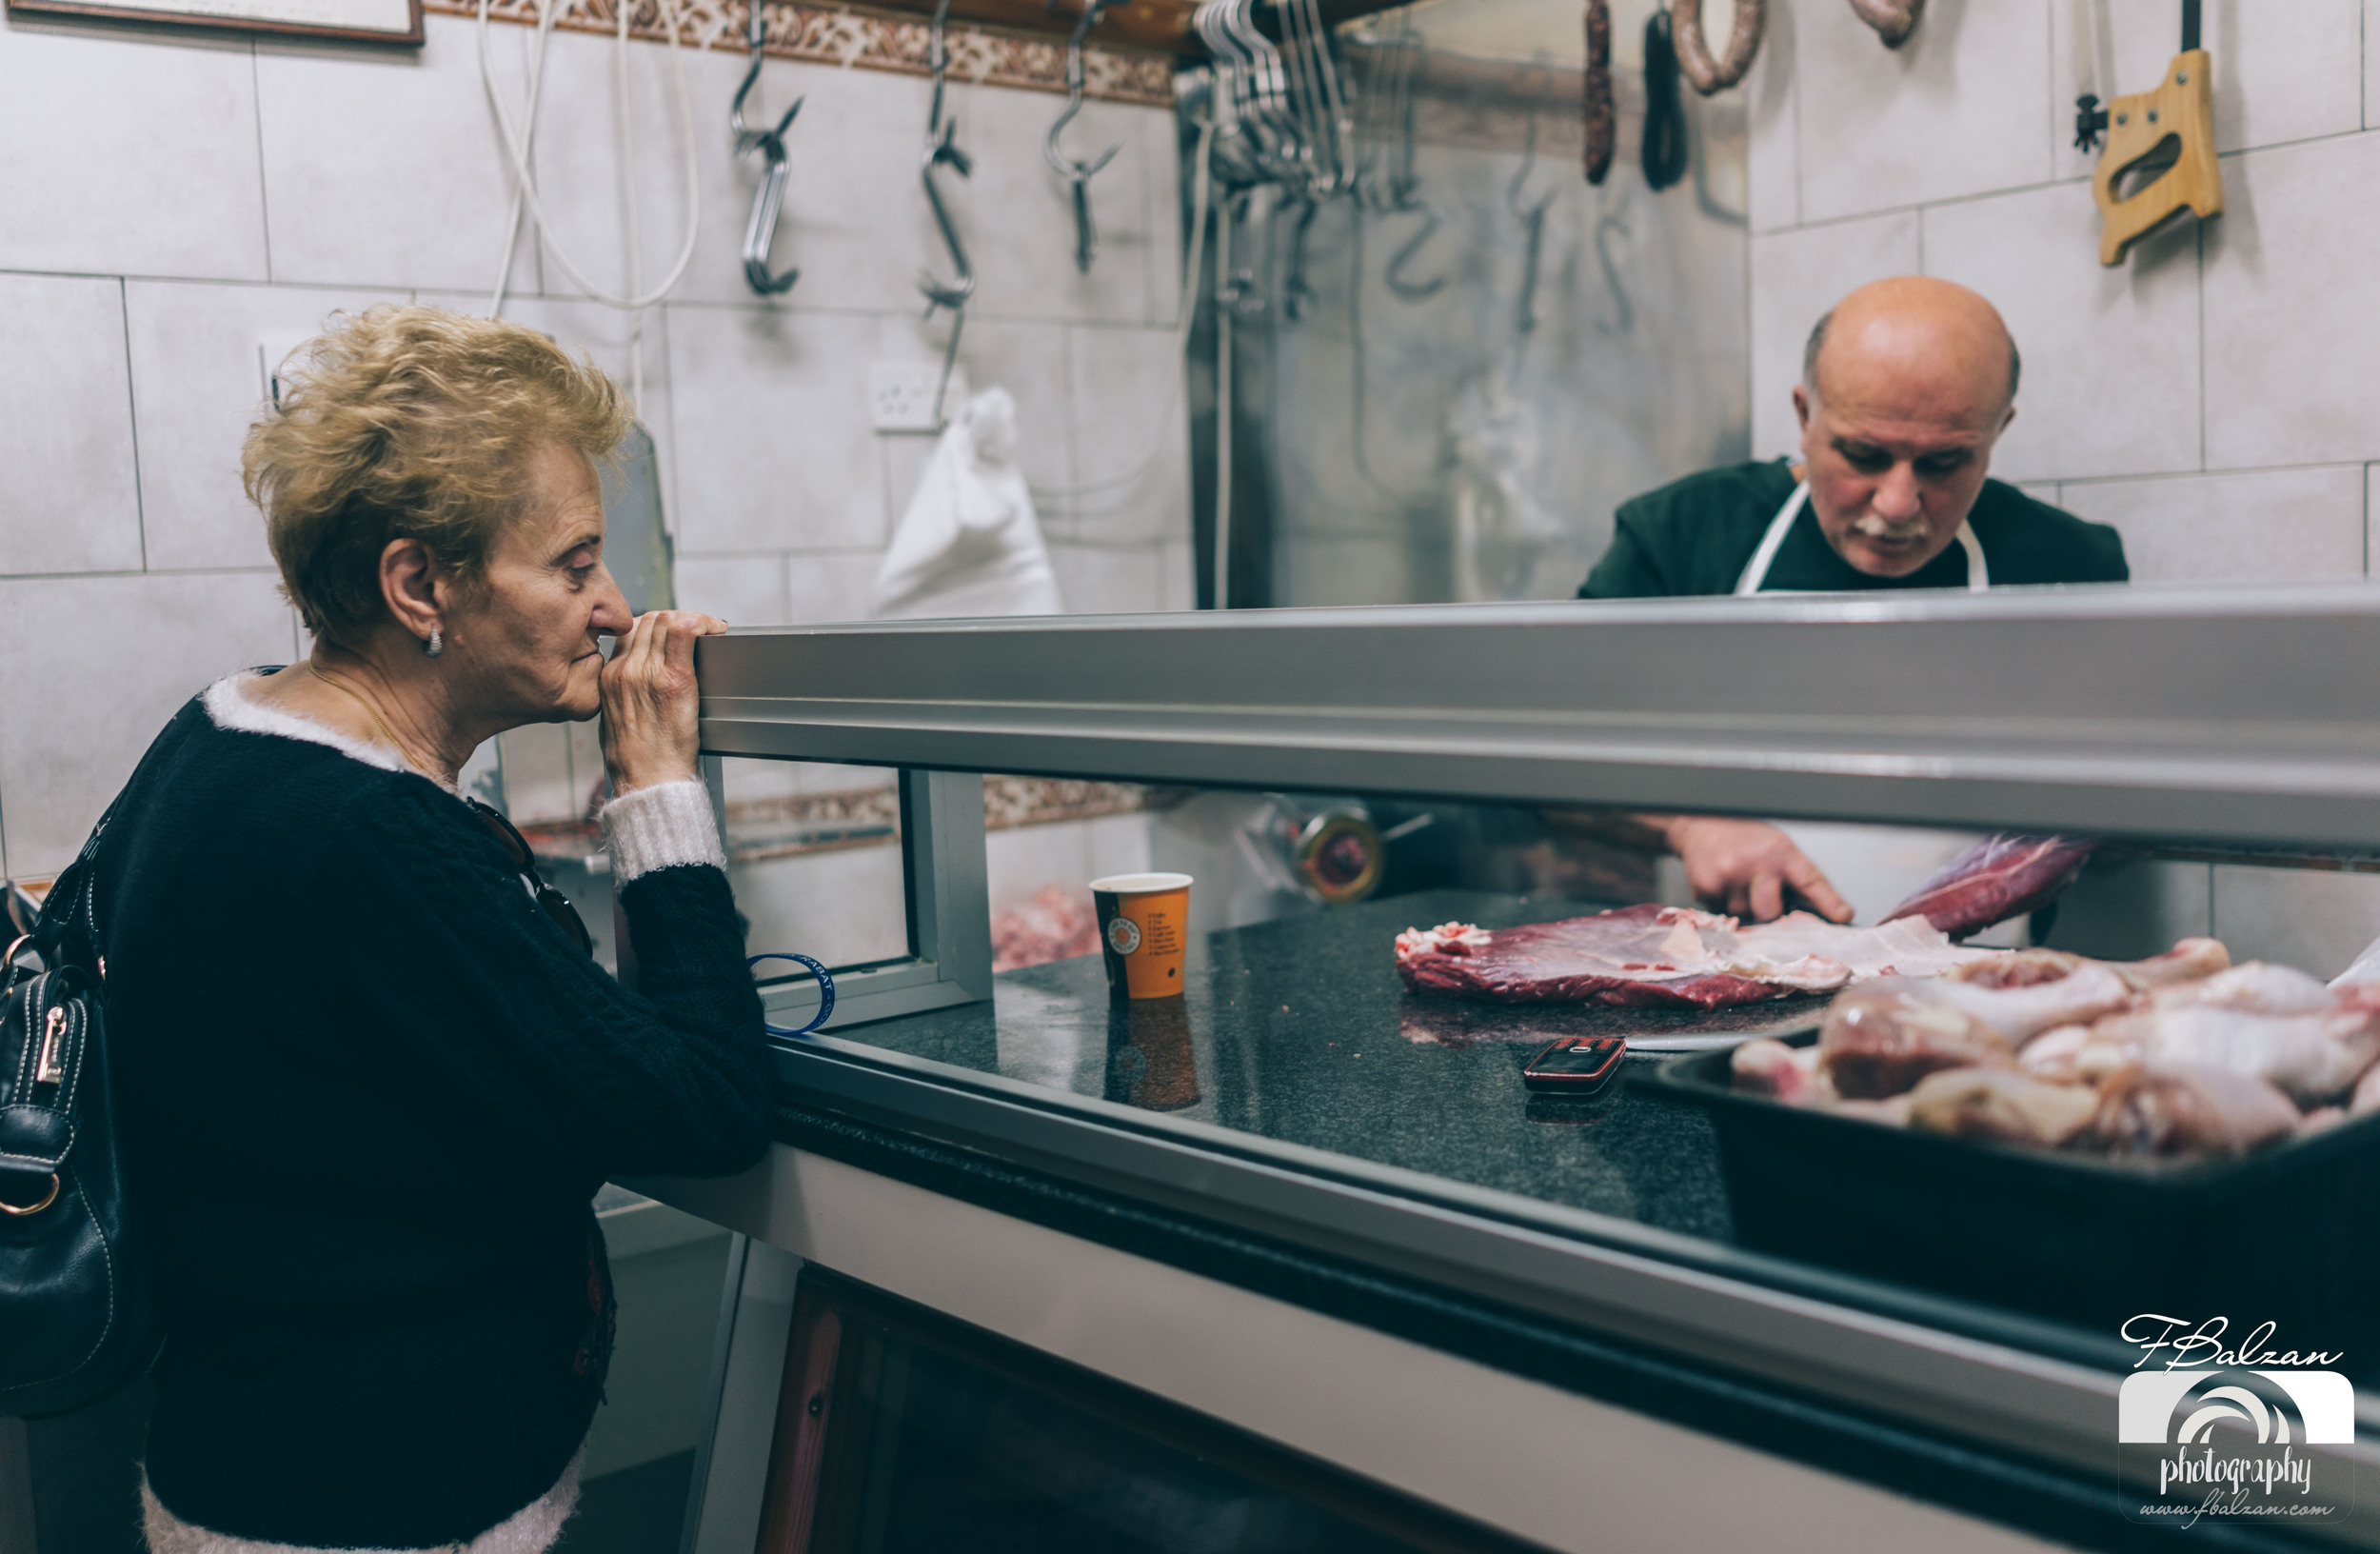 At the butcher - Gozo